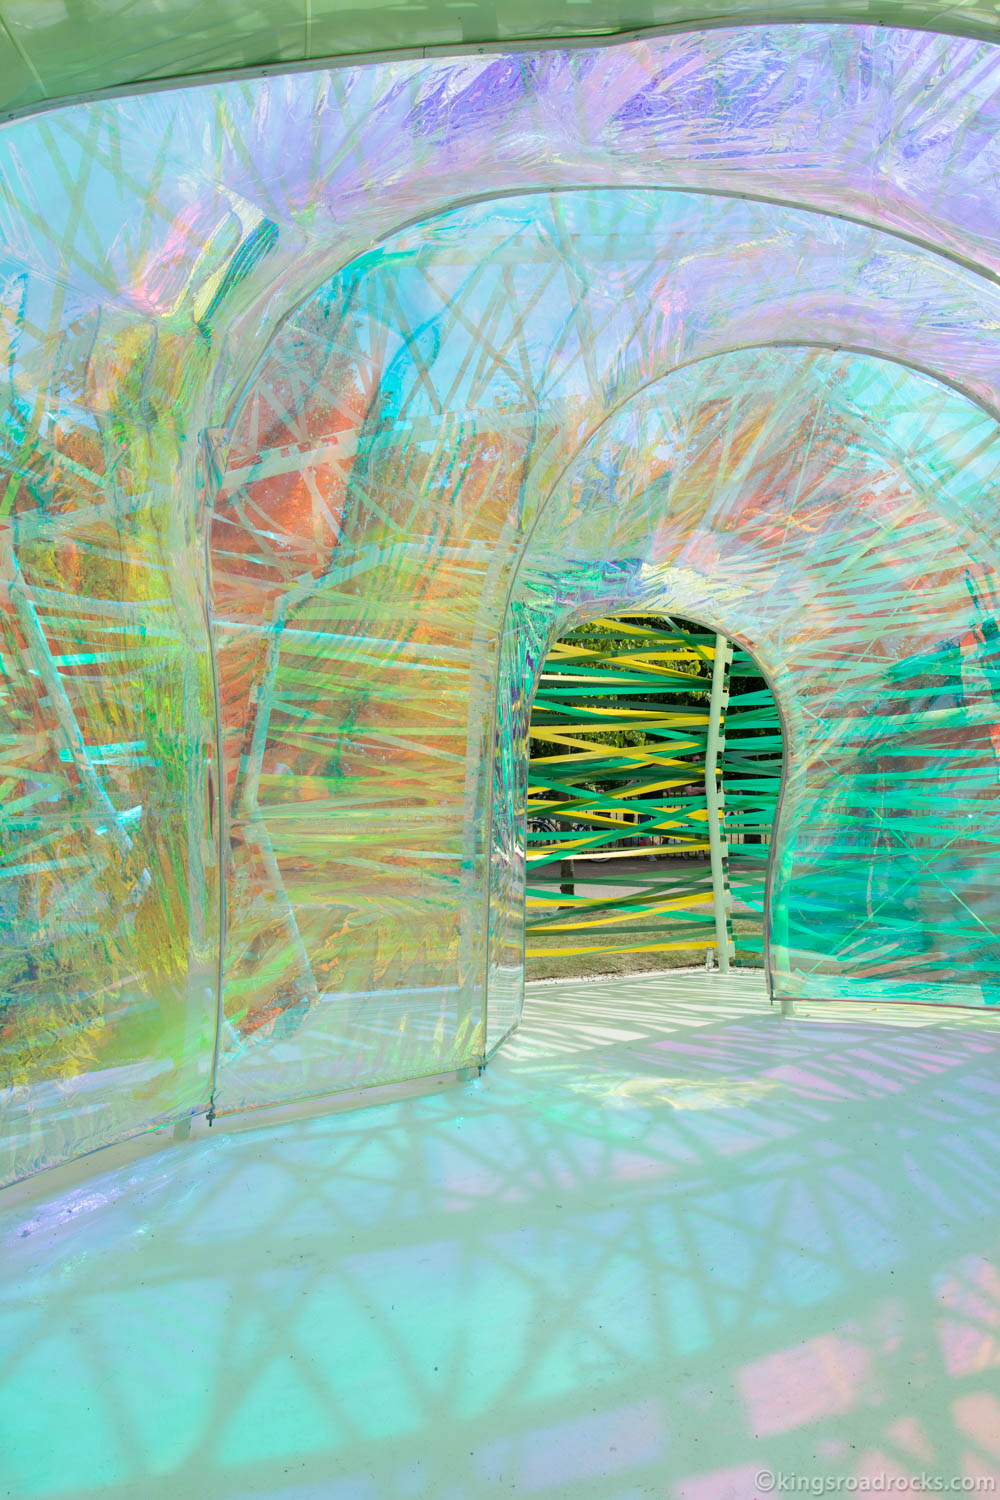 Serpentine Gallery Summer Pavilion 2015 Designed by Selgascano